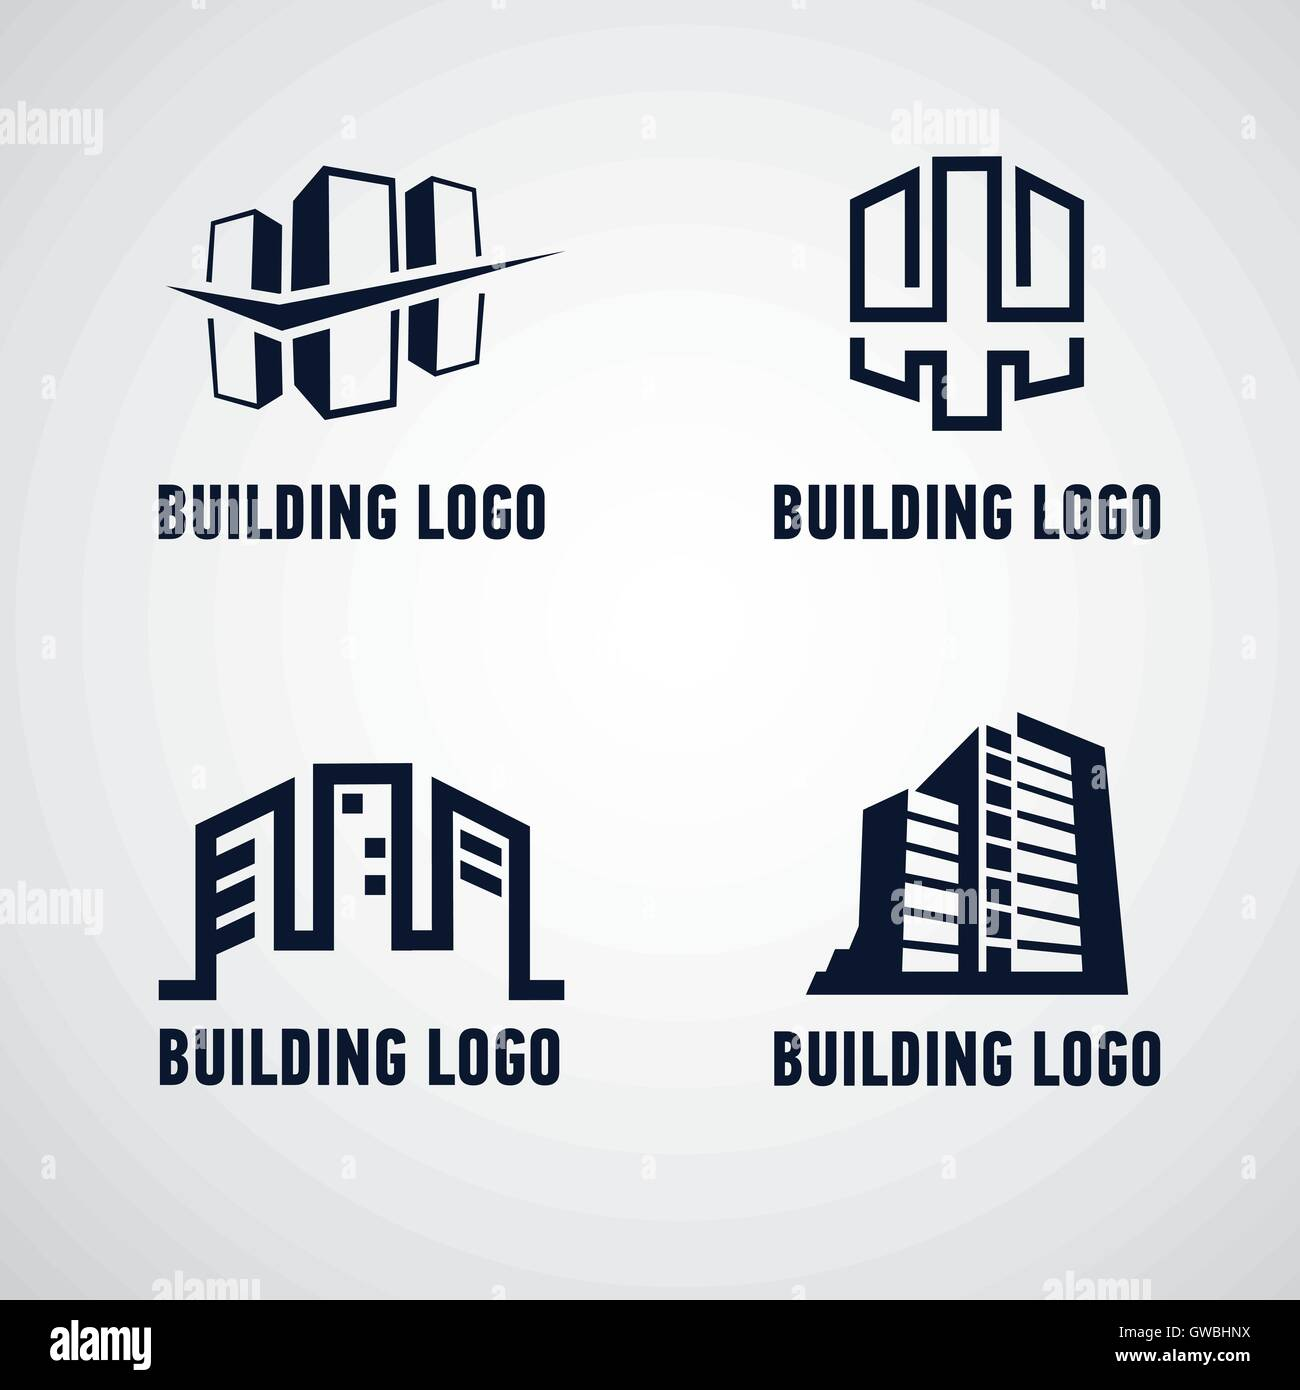 Building logotypes, sign, emblems or icons. - Stock Image